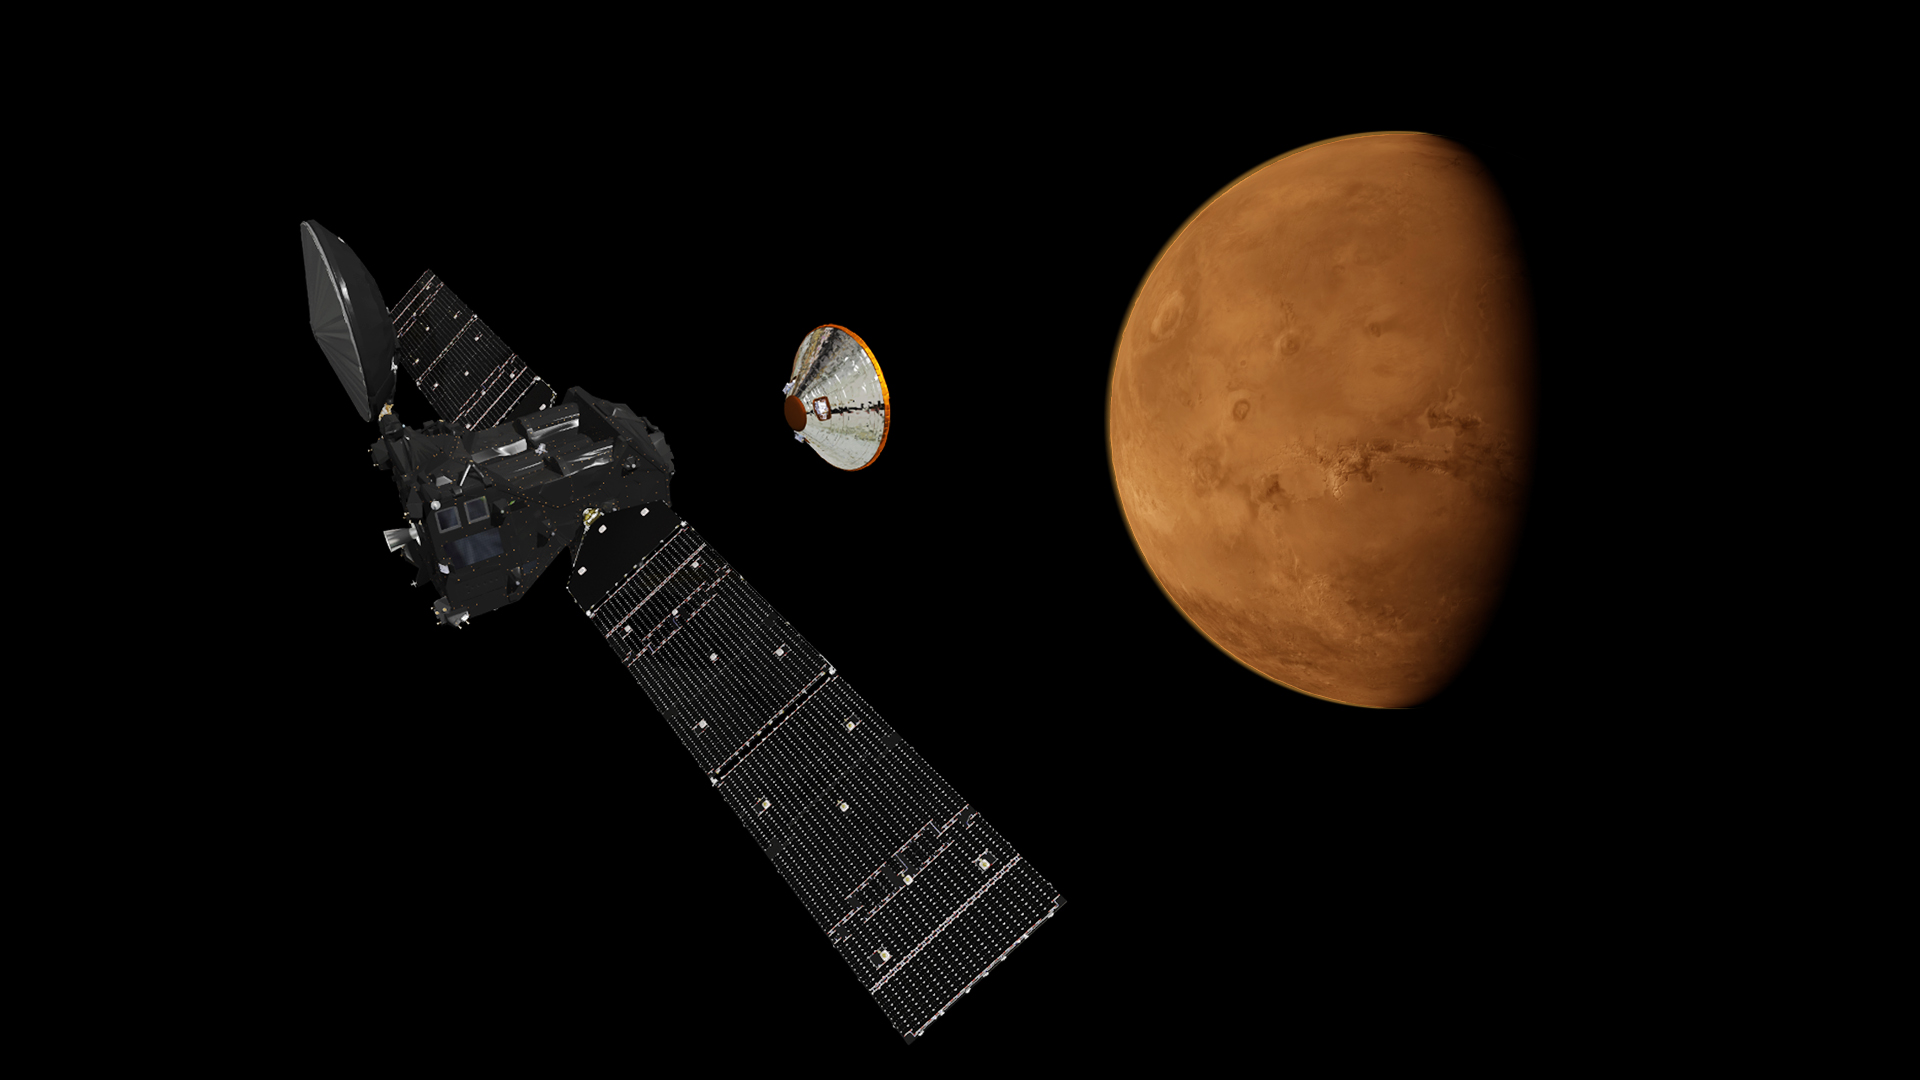 Target Mars: Red Planet in World's Crosshairs